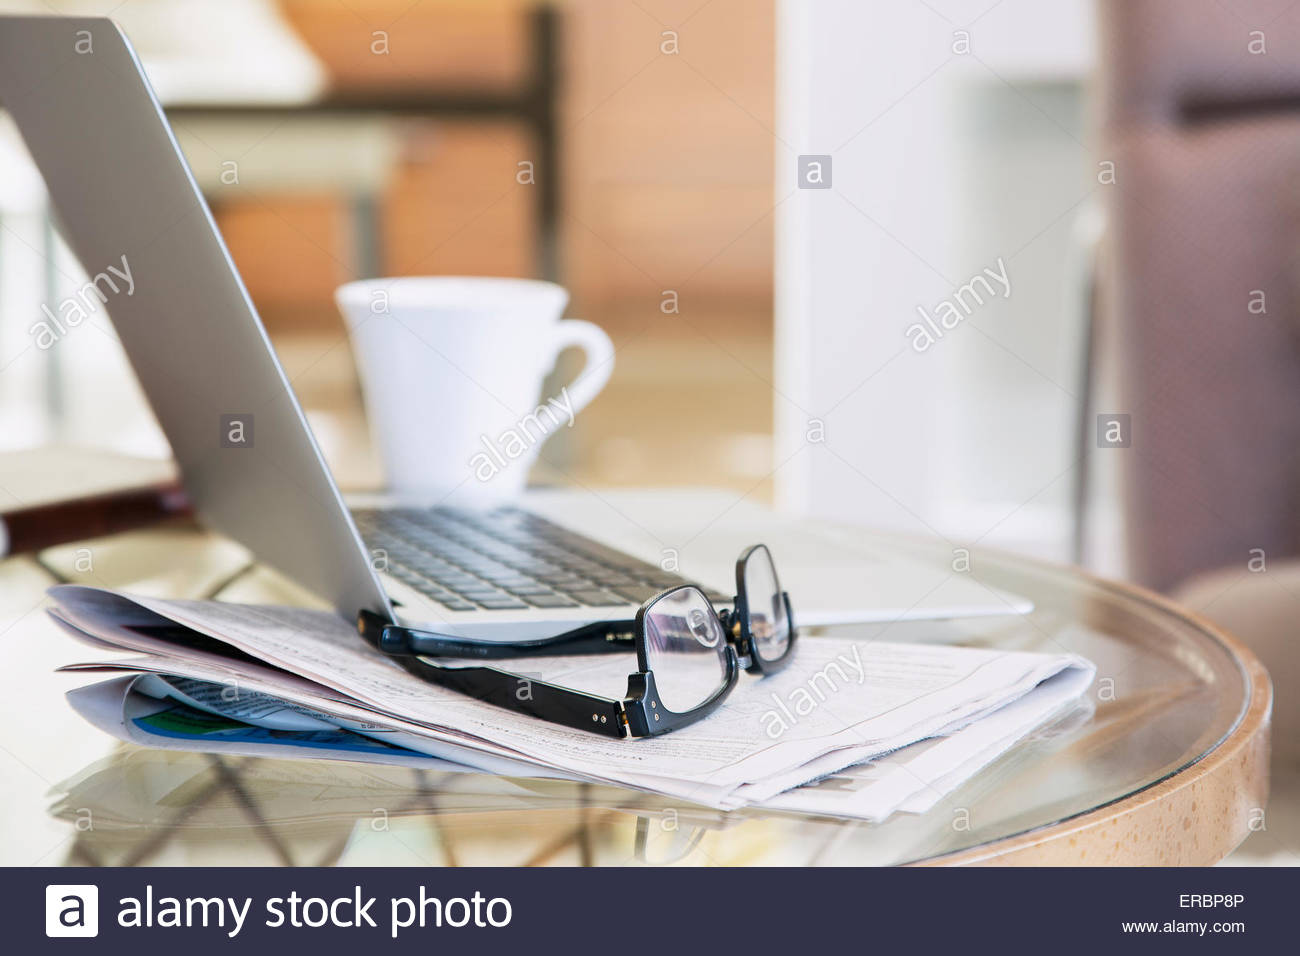 Eyeglasses and newspaper next to laptop and coffee - Stock Image